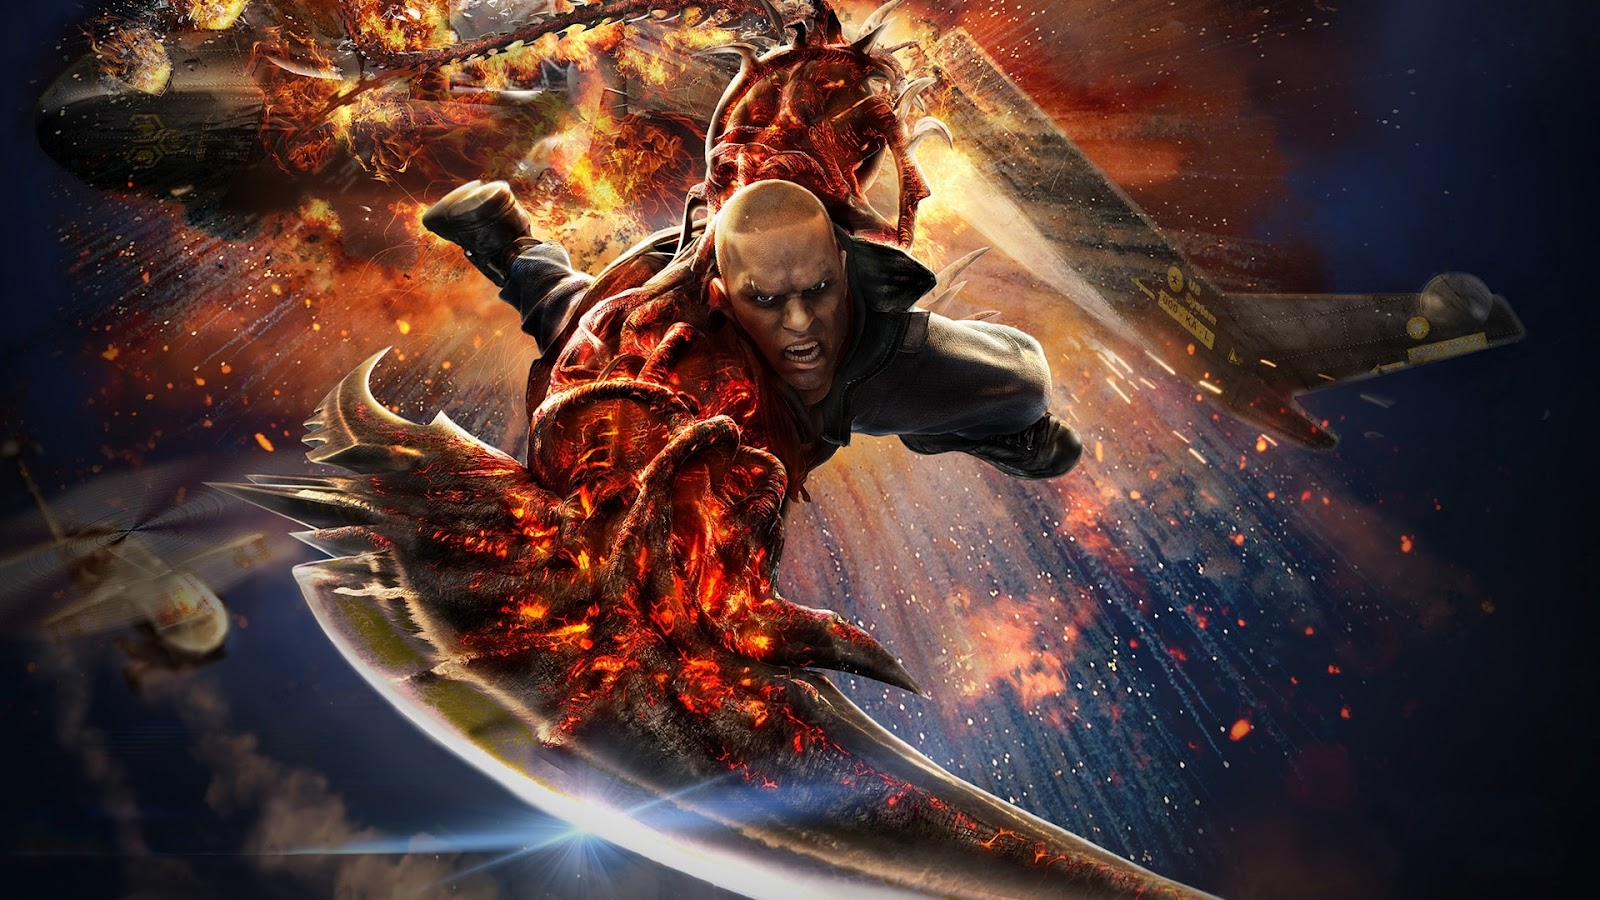 Prototype 2 Wallpapers Hd: Trololo Blogg: Crysis 2 Hd Wallpaper 1080p